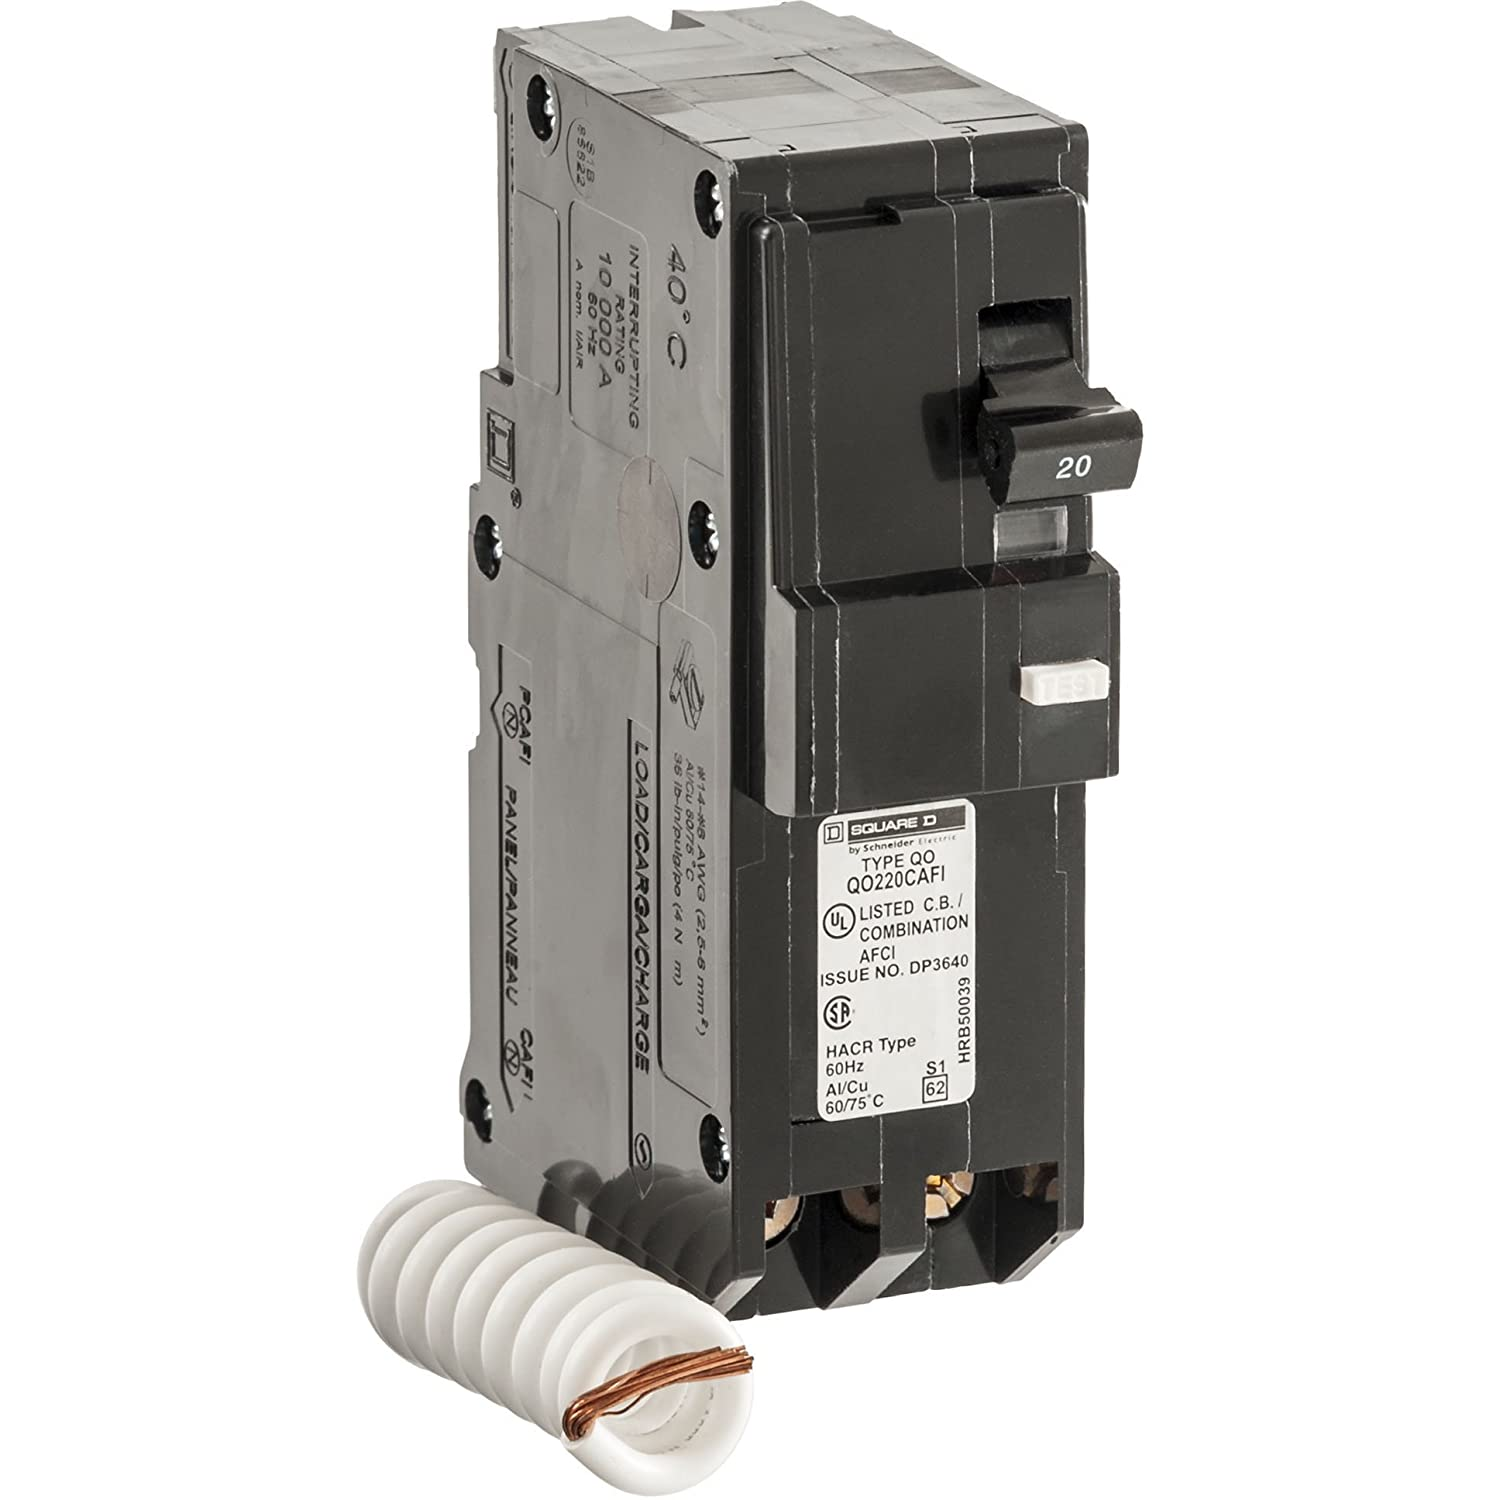 718oAYokQ4L._SL1500_ square d by schneider electric qo 20 amp 3 5 in two pole cafci 240 Volt Breaker Wiring Diagram at gsmx.co